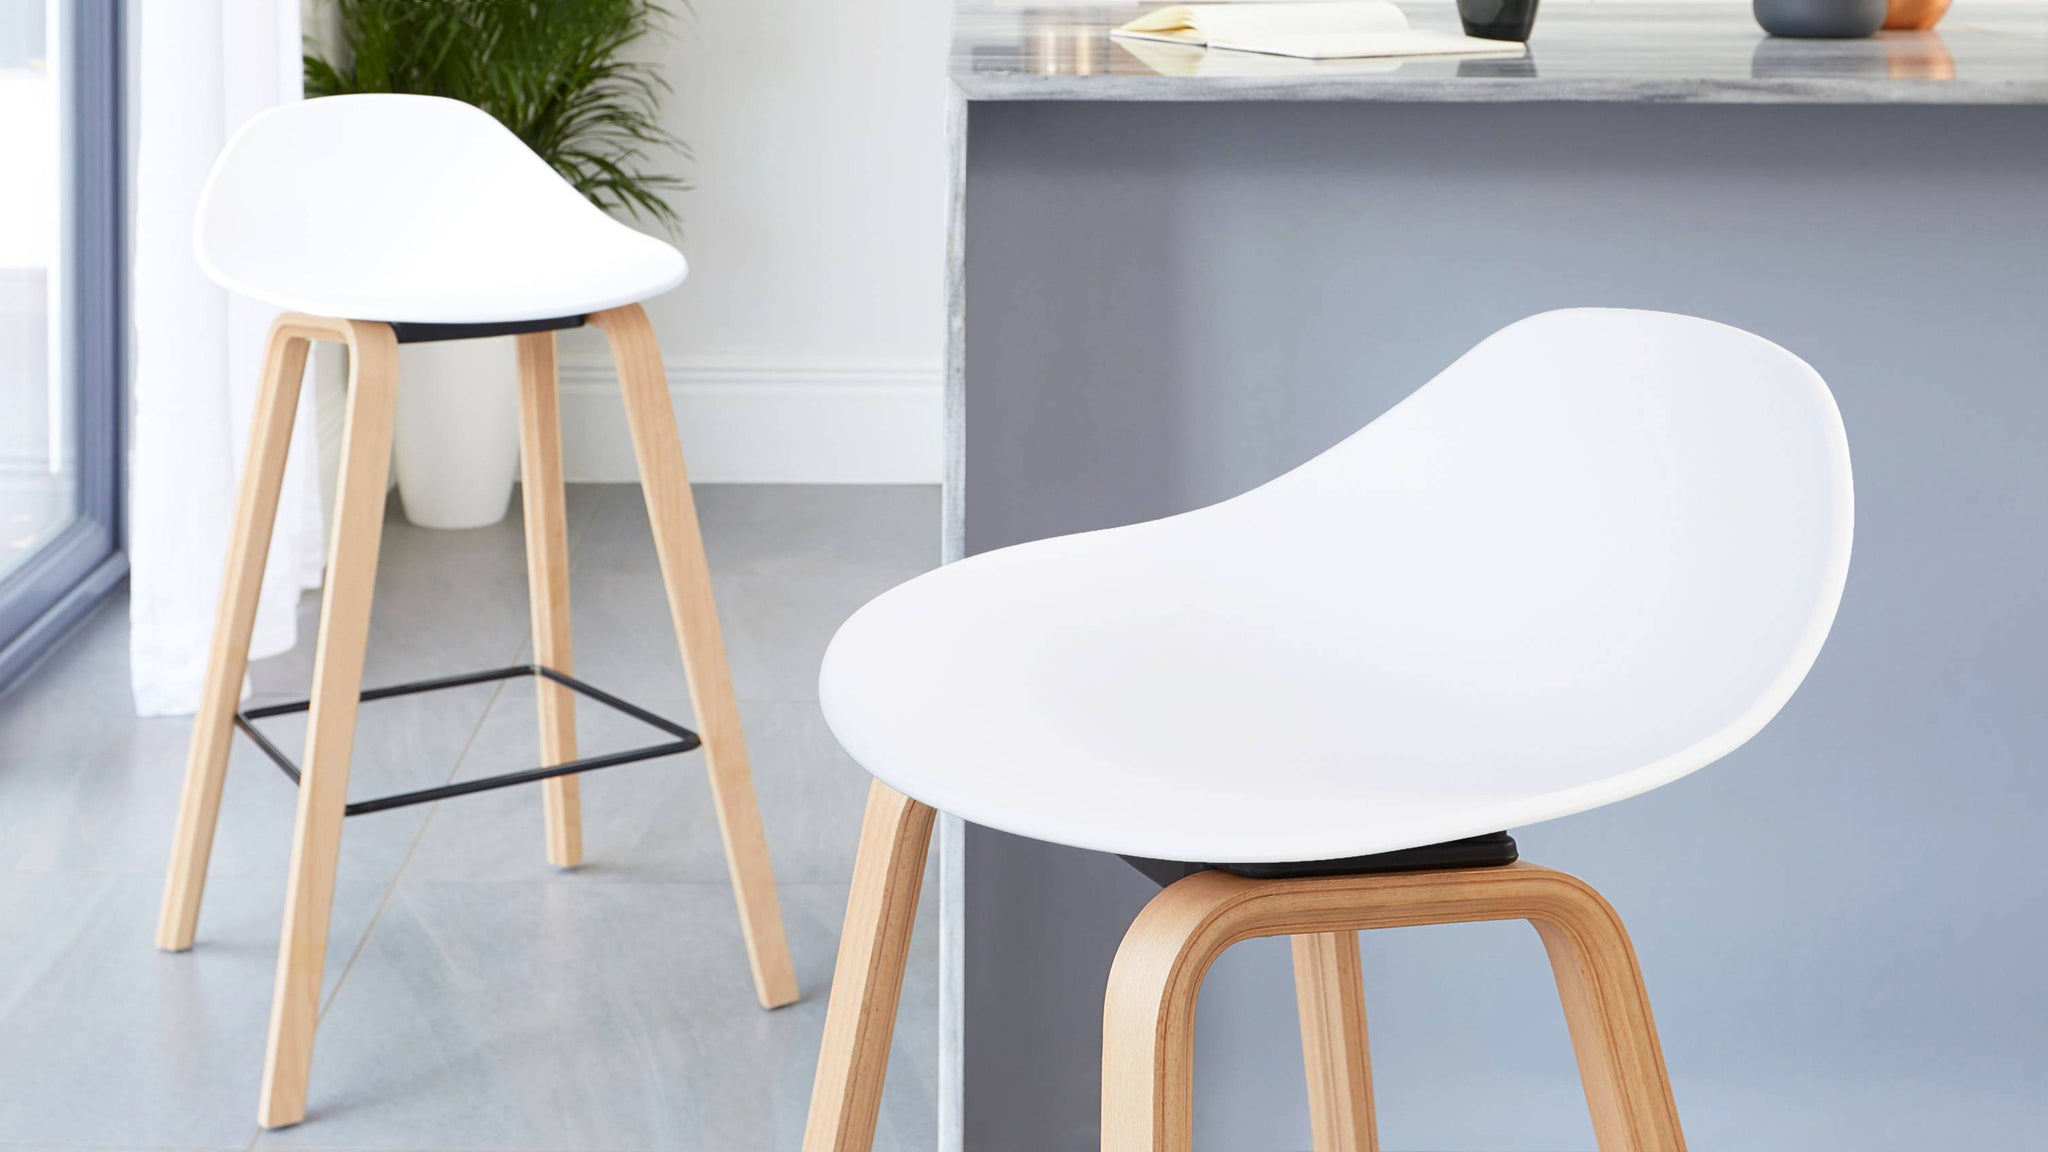 Wooden white bar stools